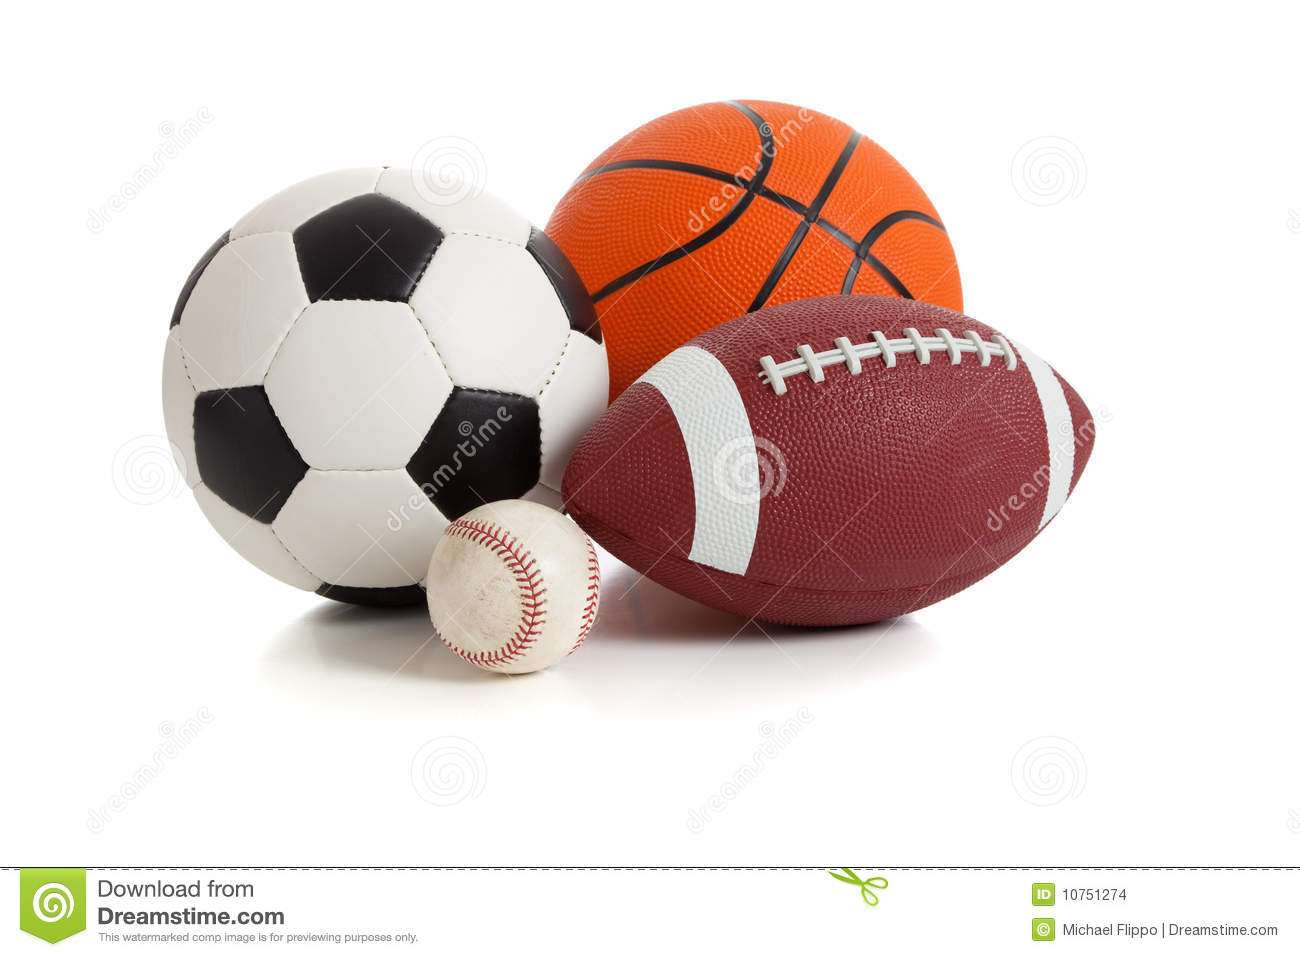 Assorted sports ball on a white background. Includes a soccer ball, a ...